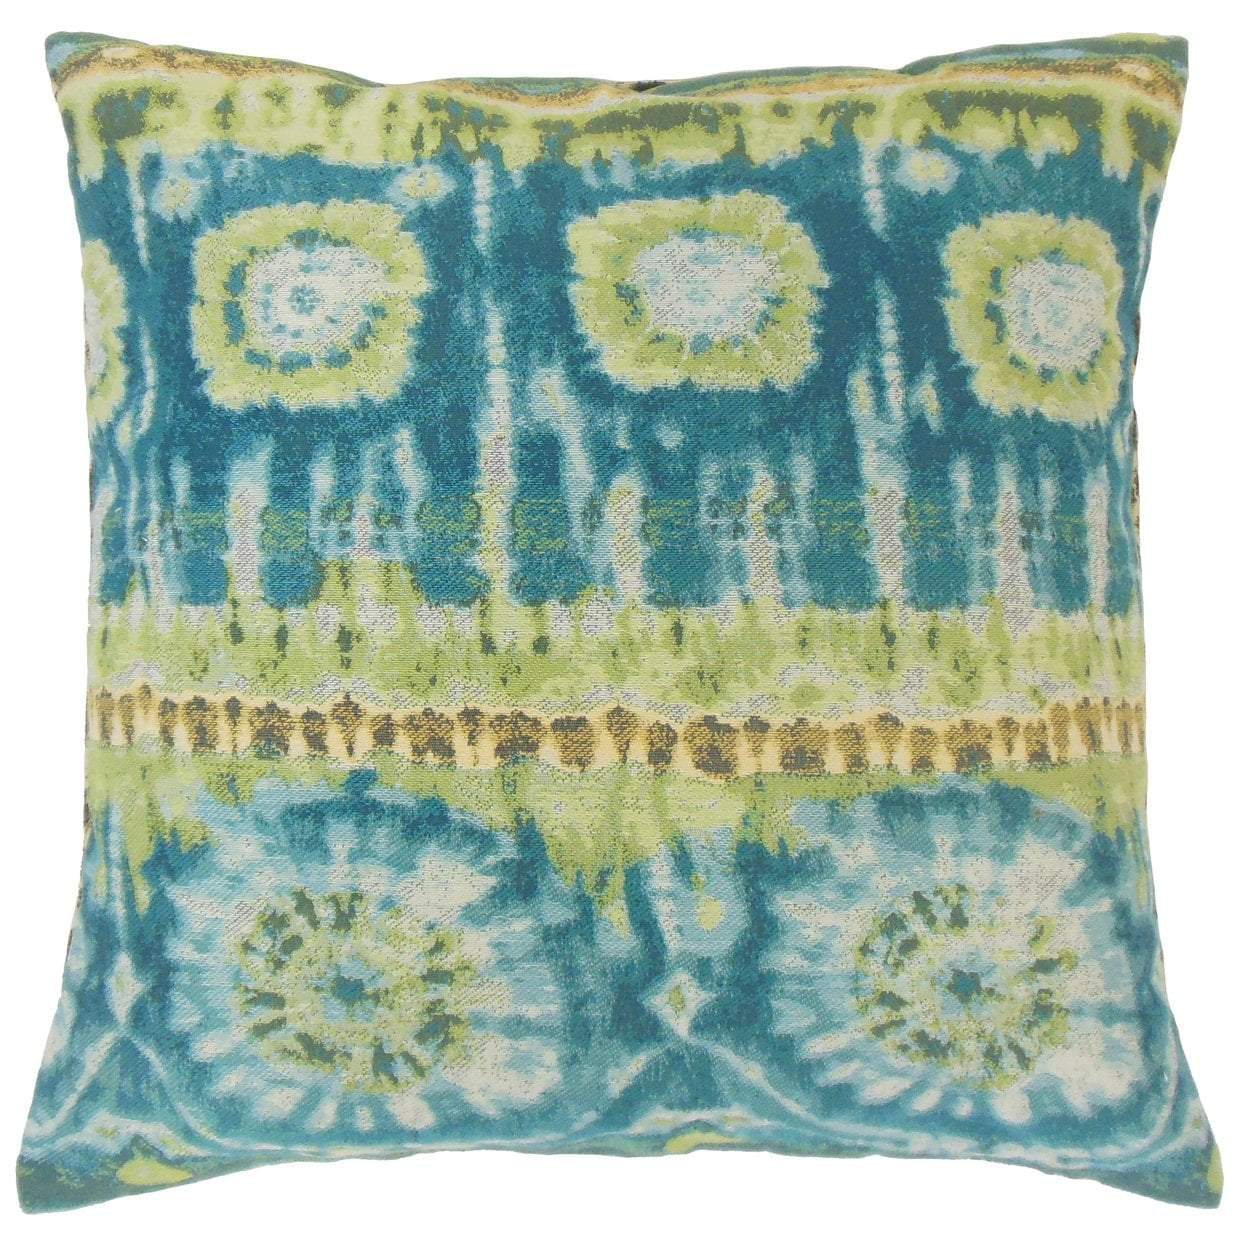 McClay Throw Pillow Cover